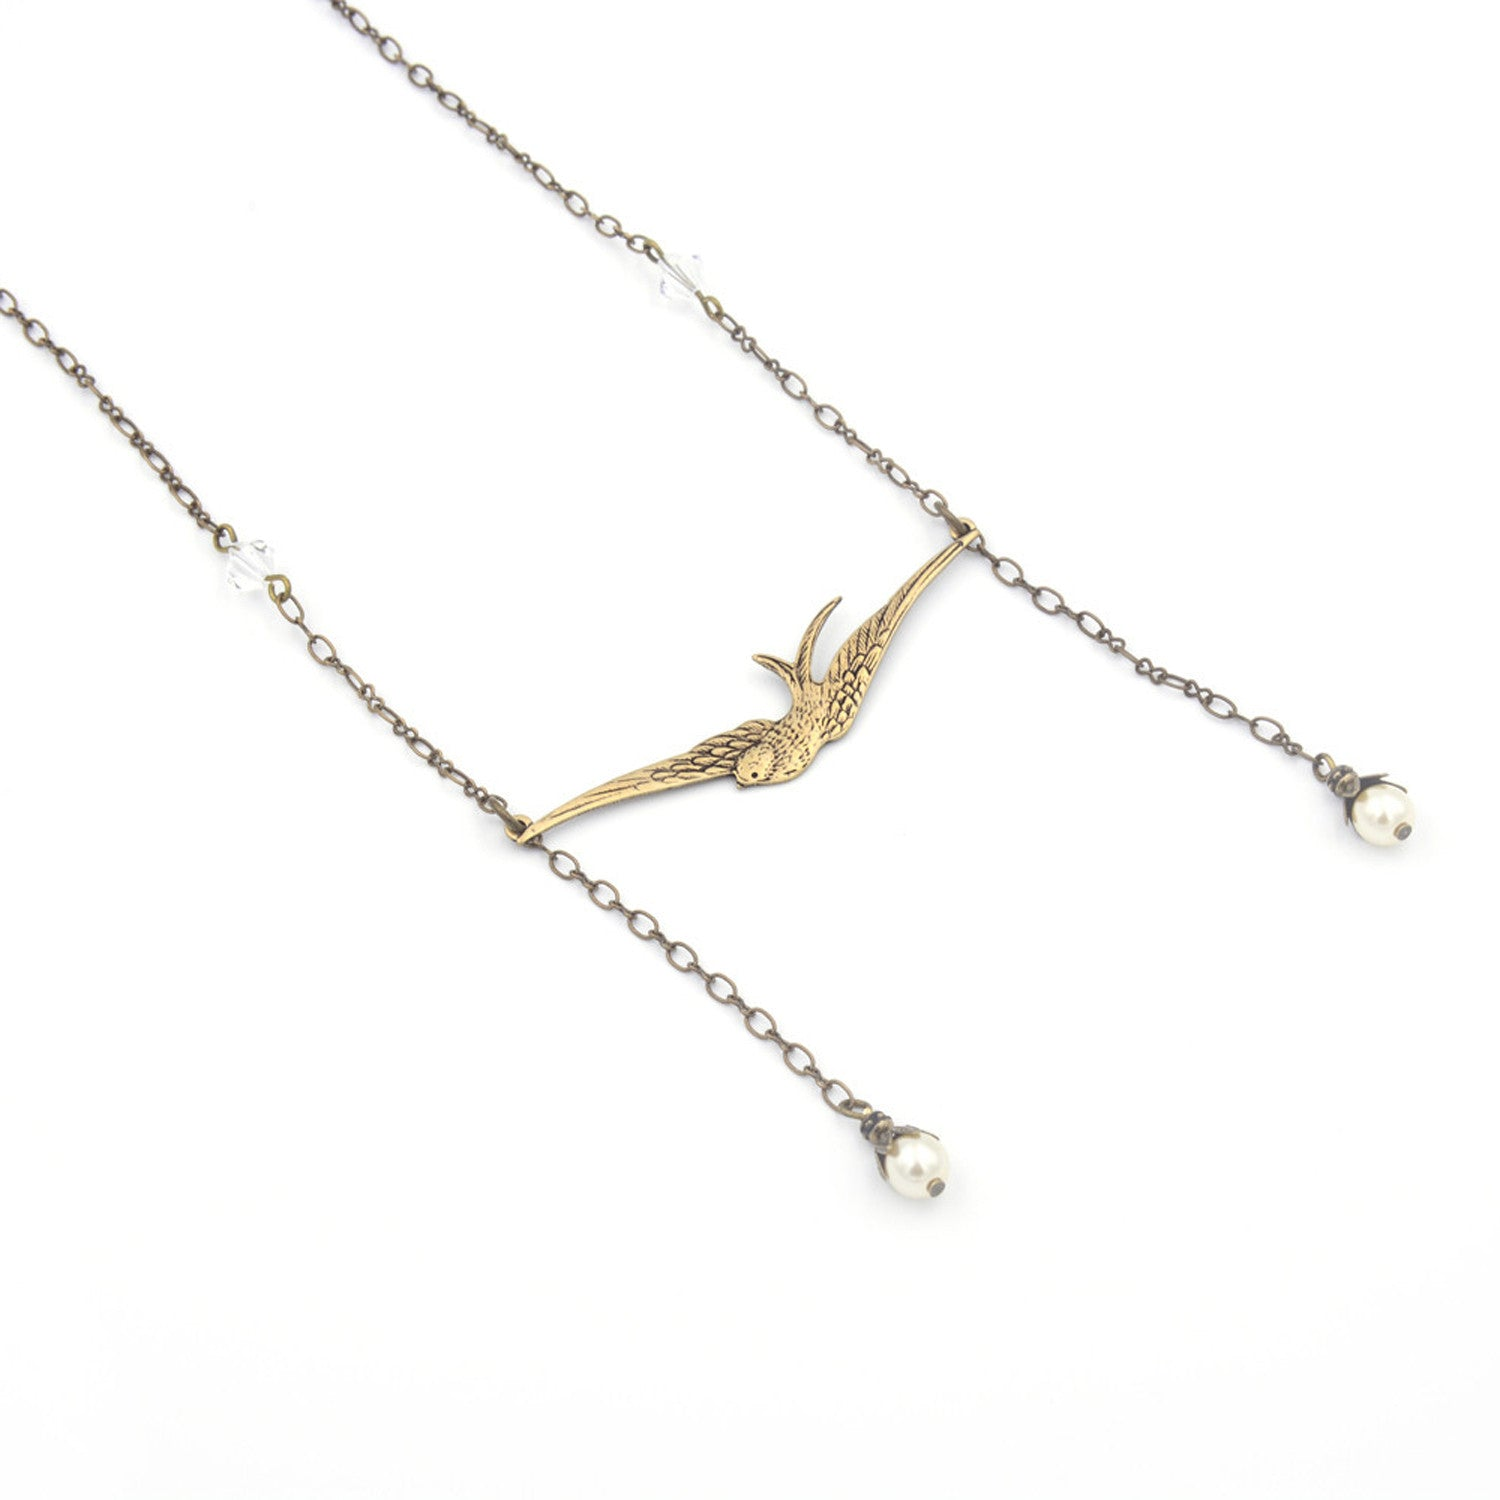 Swallow Necklace in Antique Gold or Silver